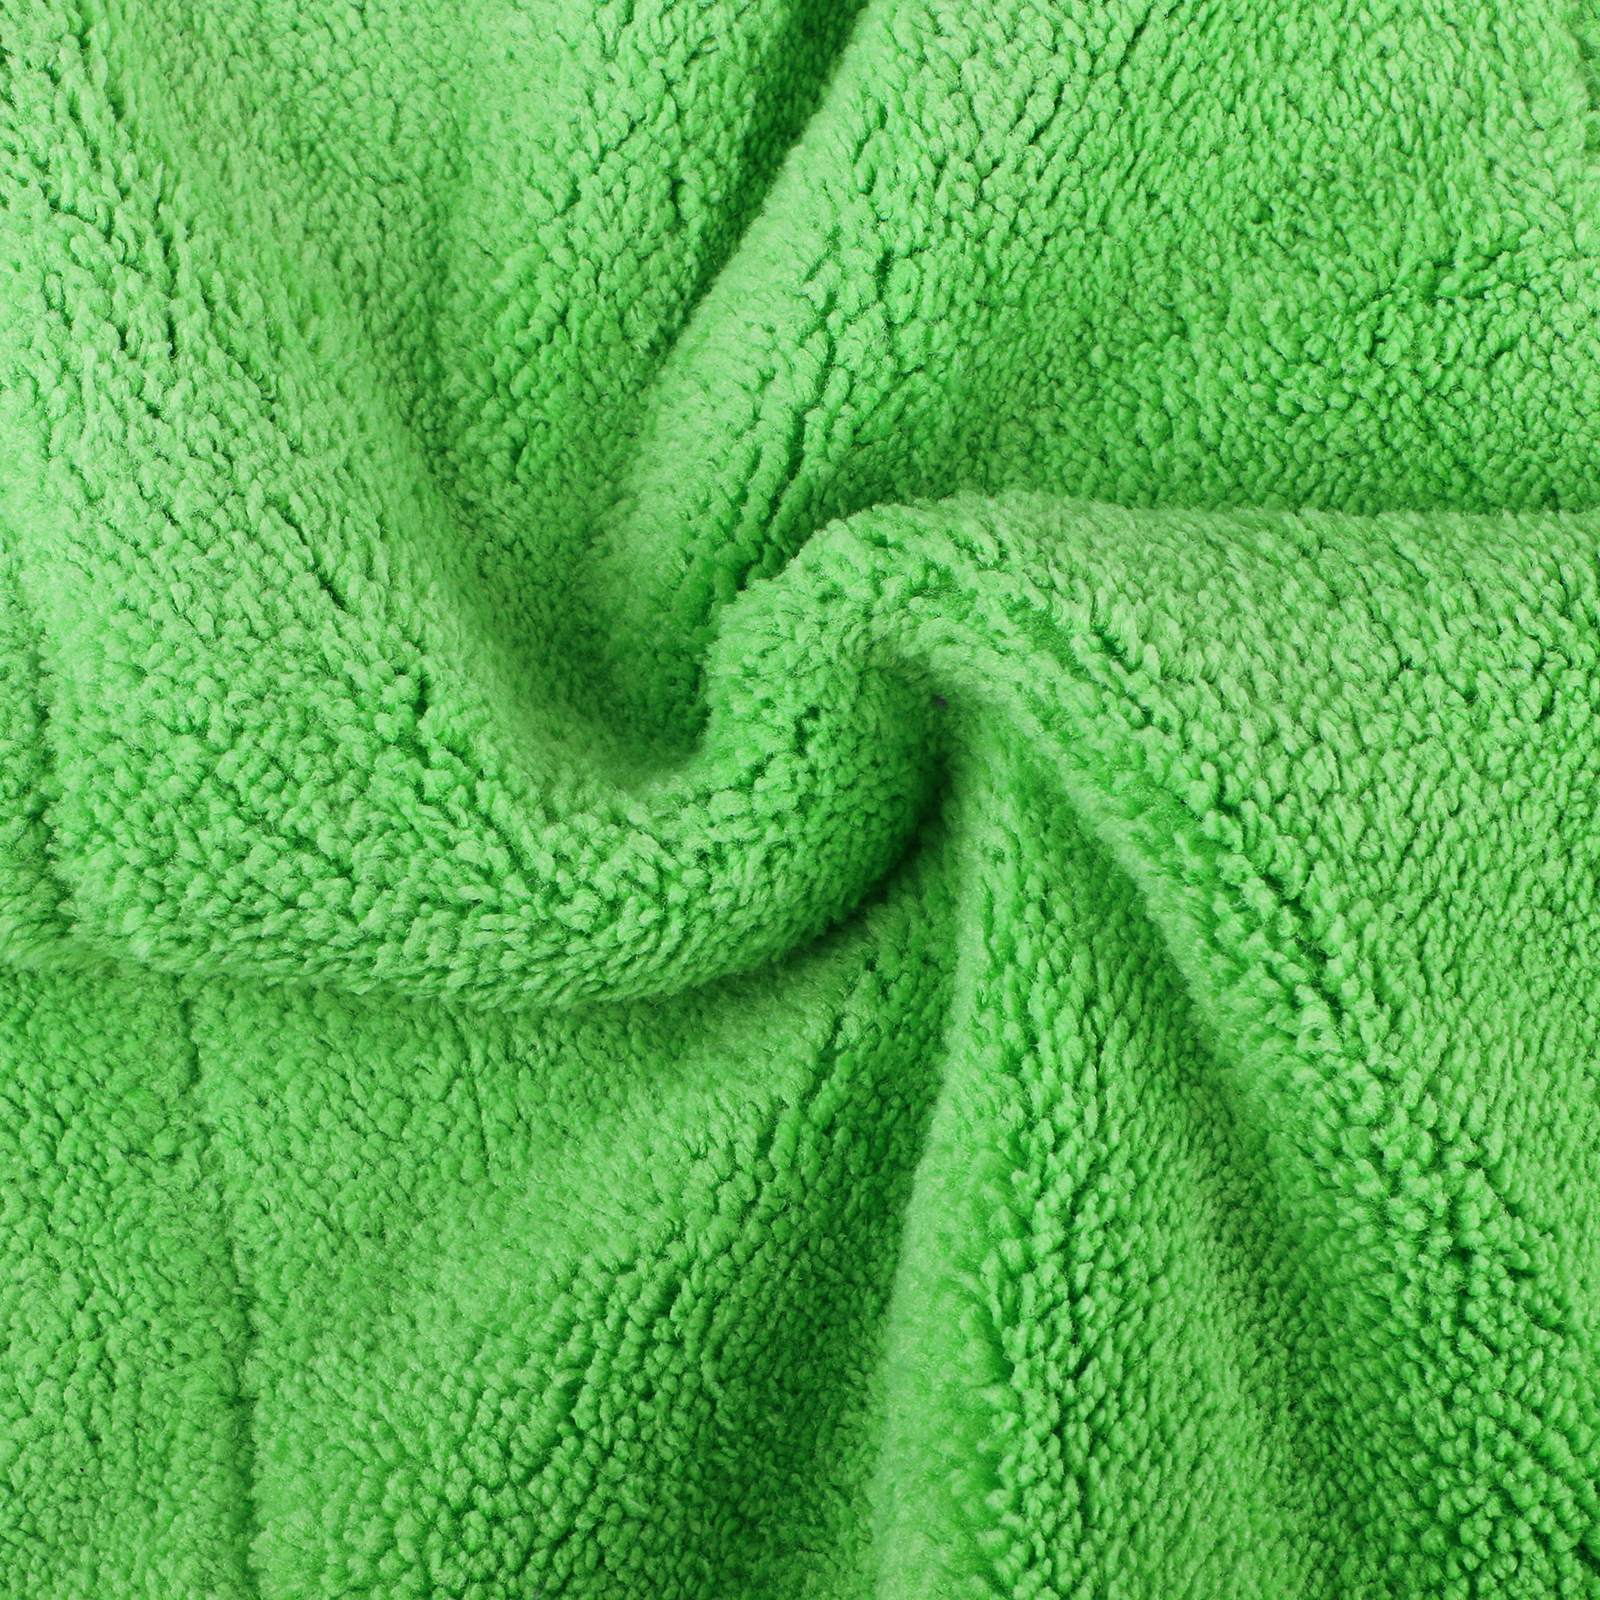 Super-Absorbent-Car-Cleaning-Towel-Wiping-Cloth-Car-Care-Coral-Velvet-Microfiber thumbnail 15